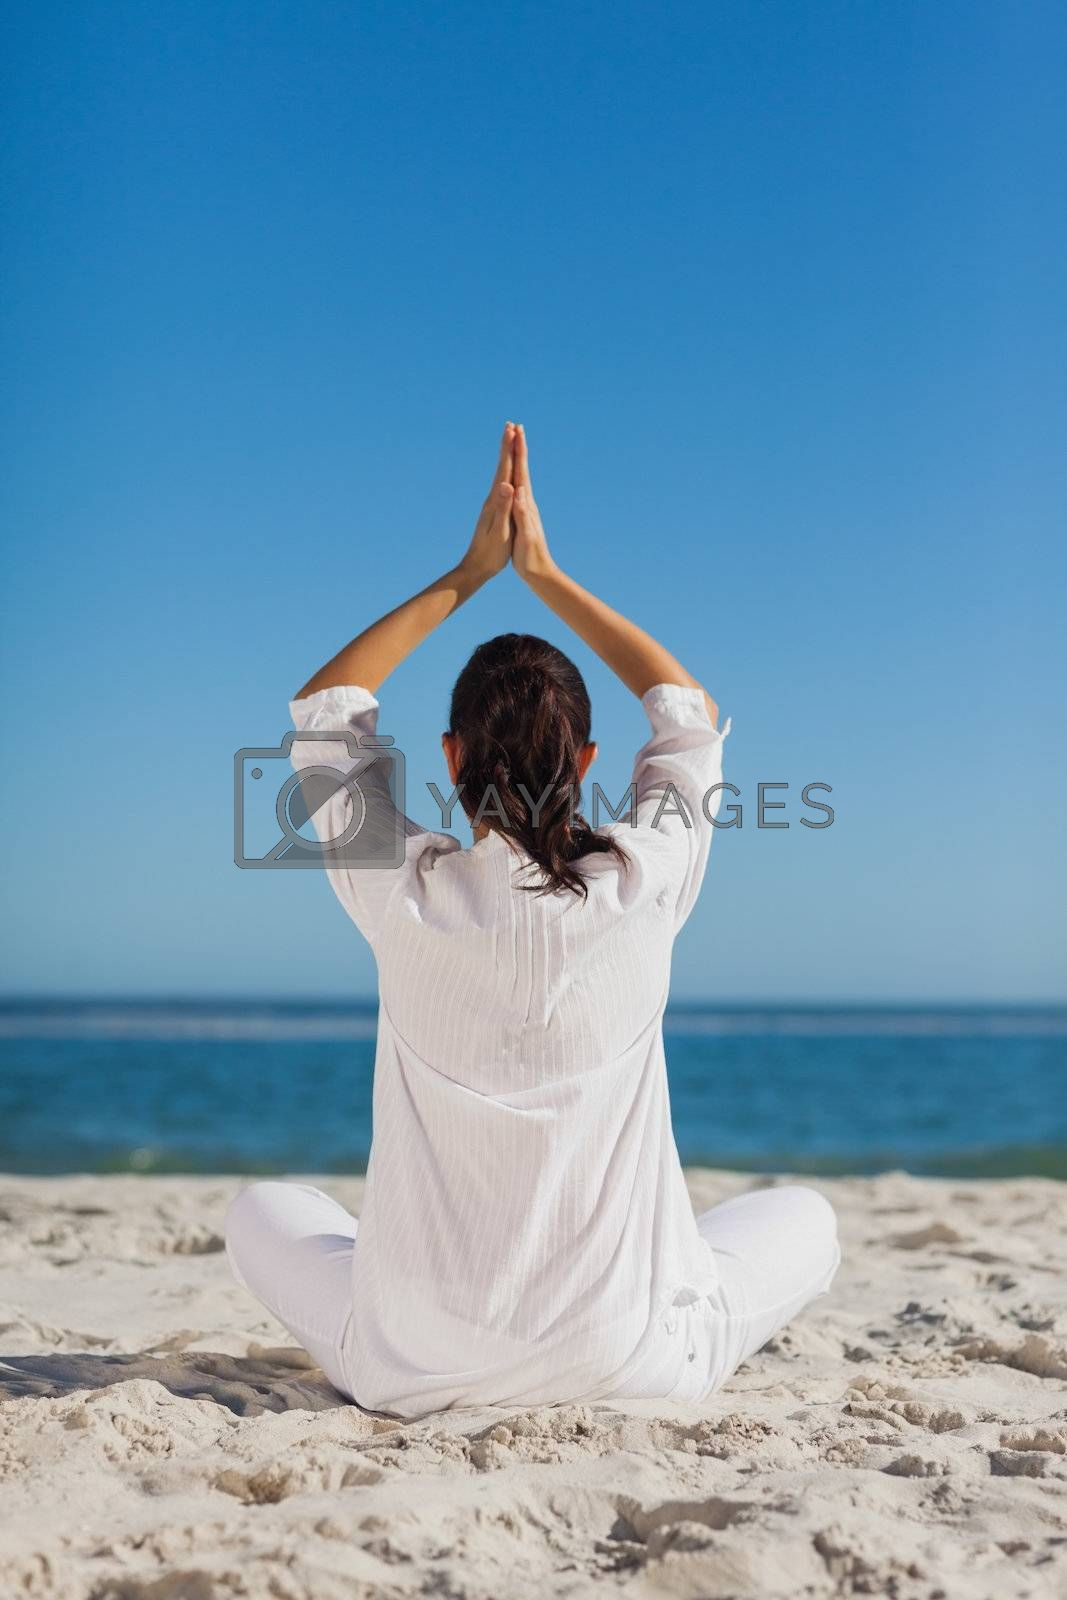 Brunette woman sitting back to camera practicing yoga by Wavebreakmedia